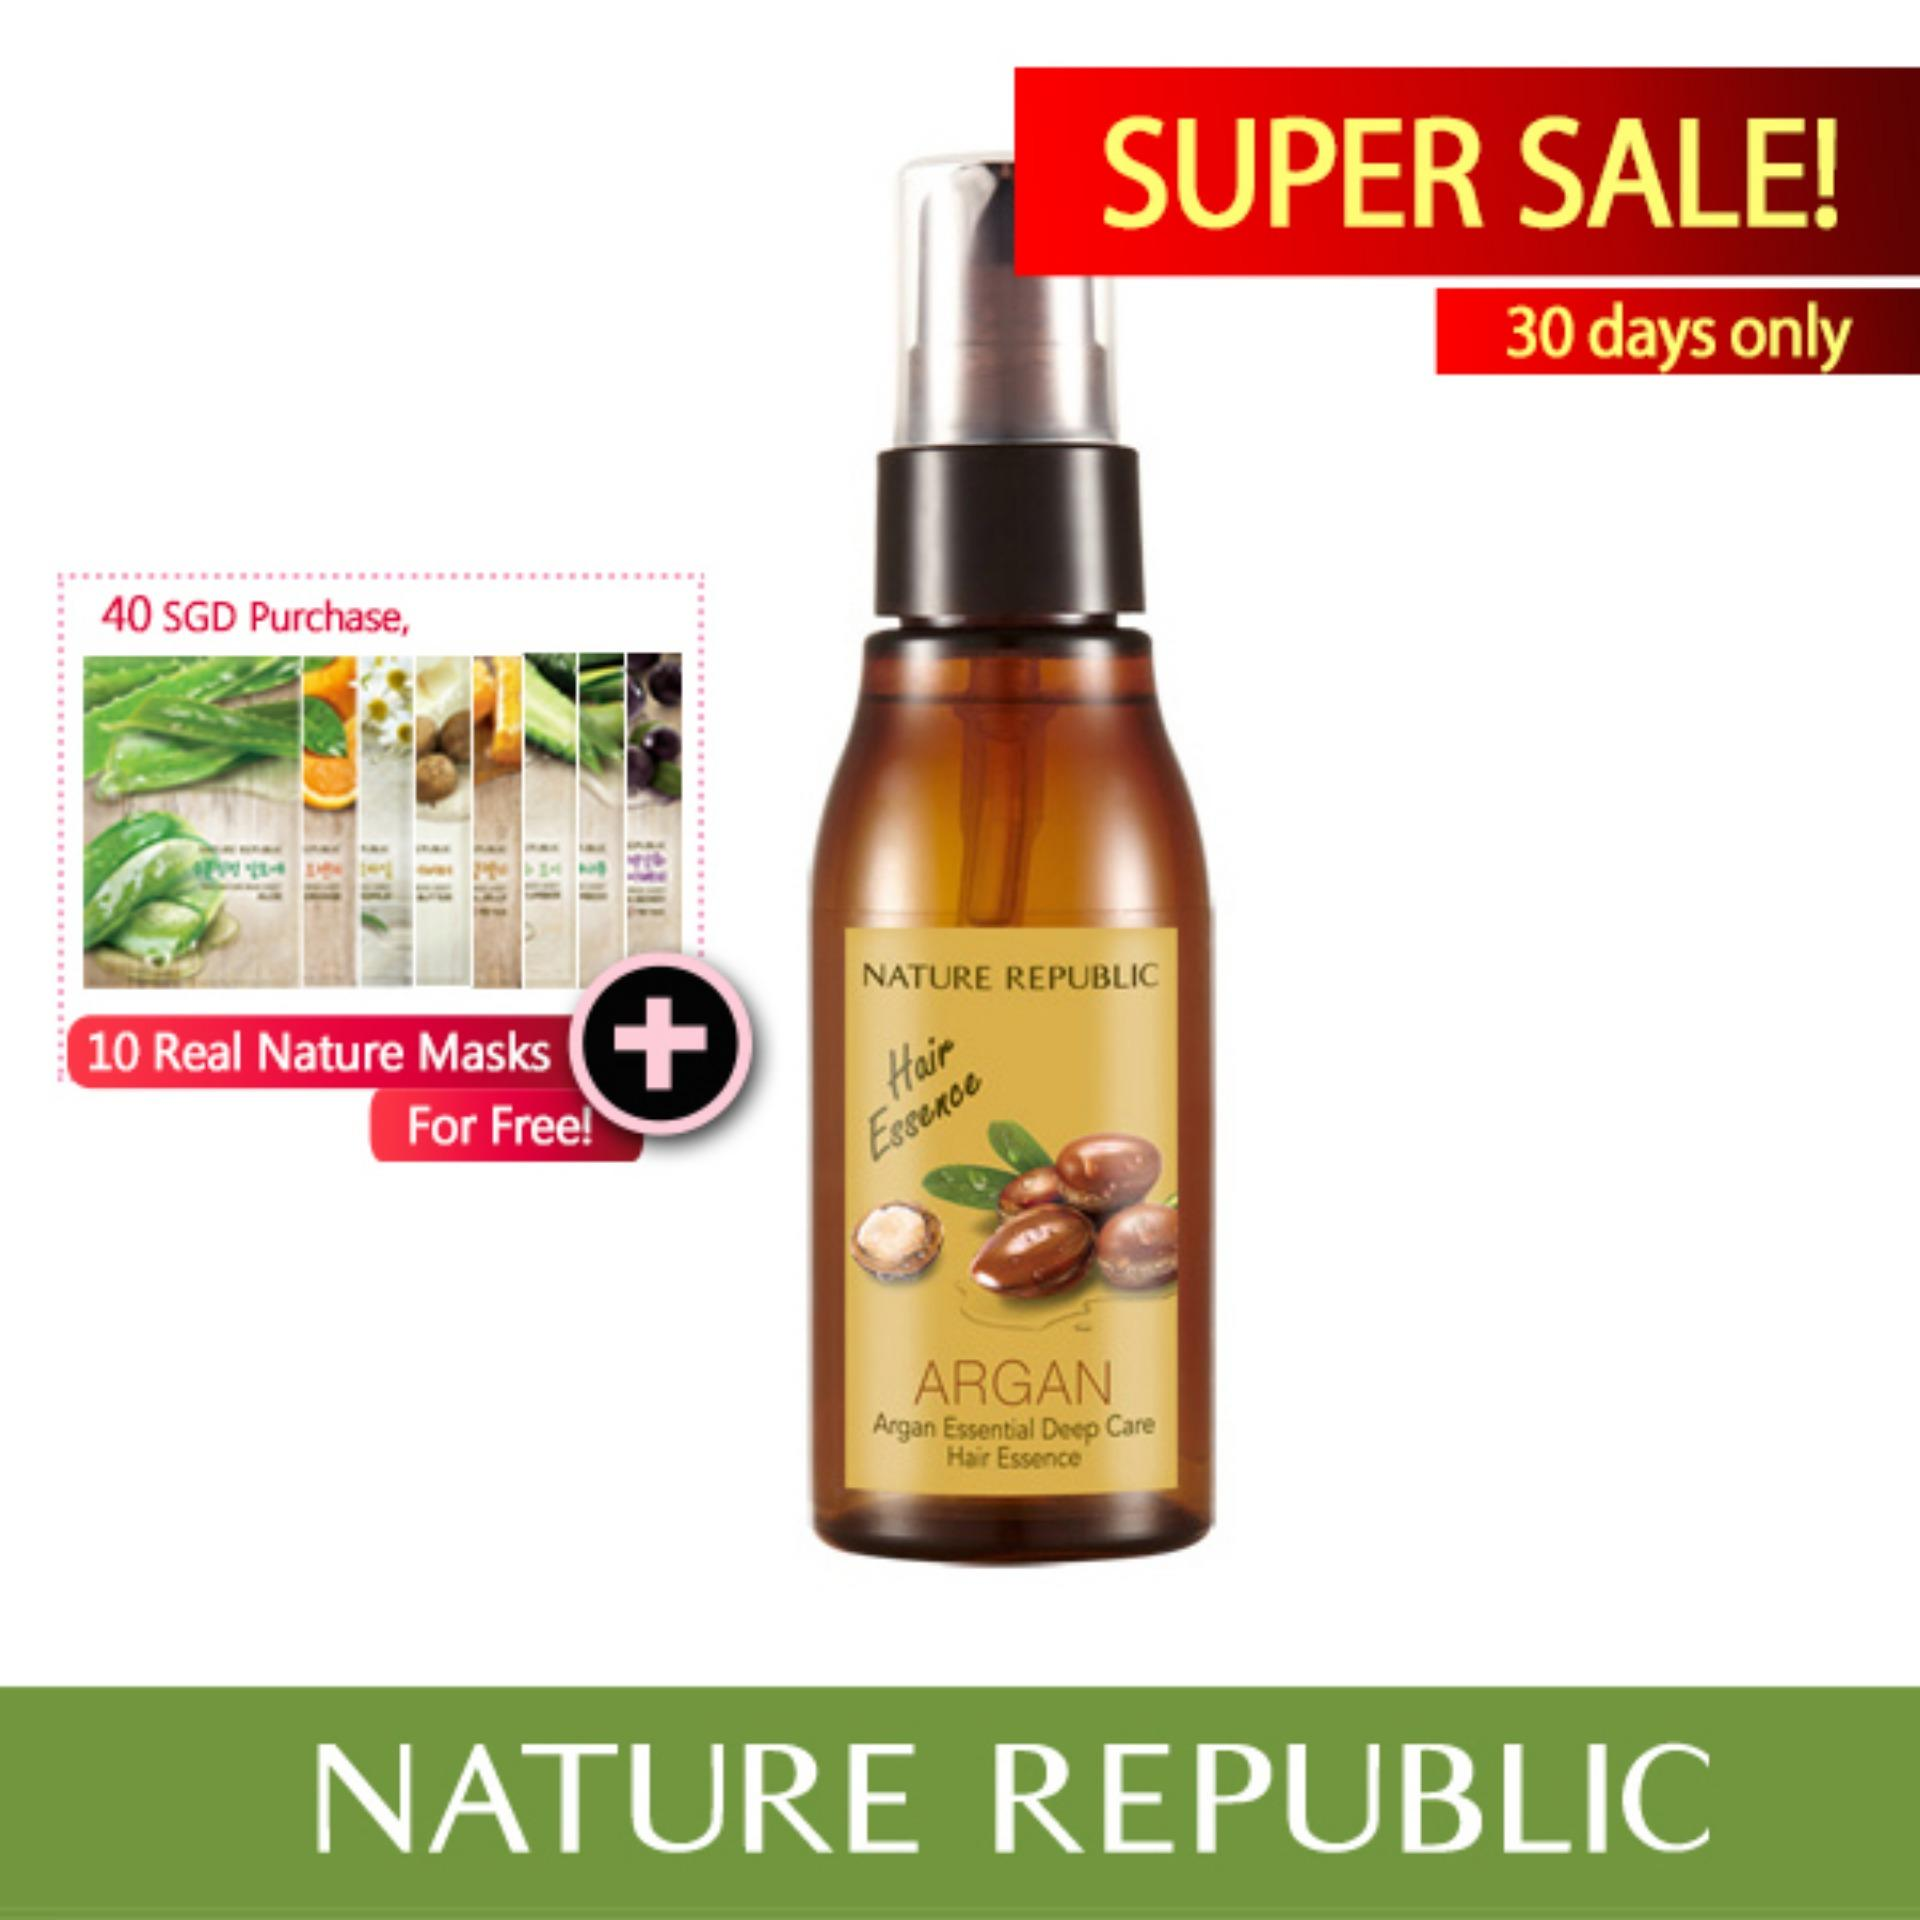 Purchase Nature Republic Argan Essential Deep Care Hair Essence Online